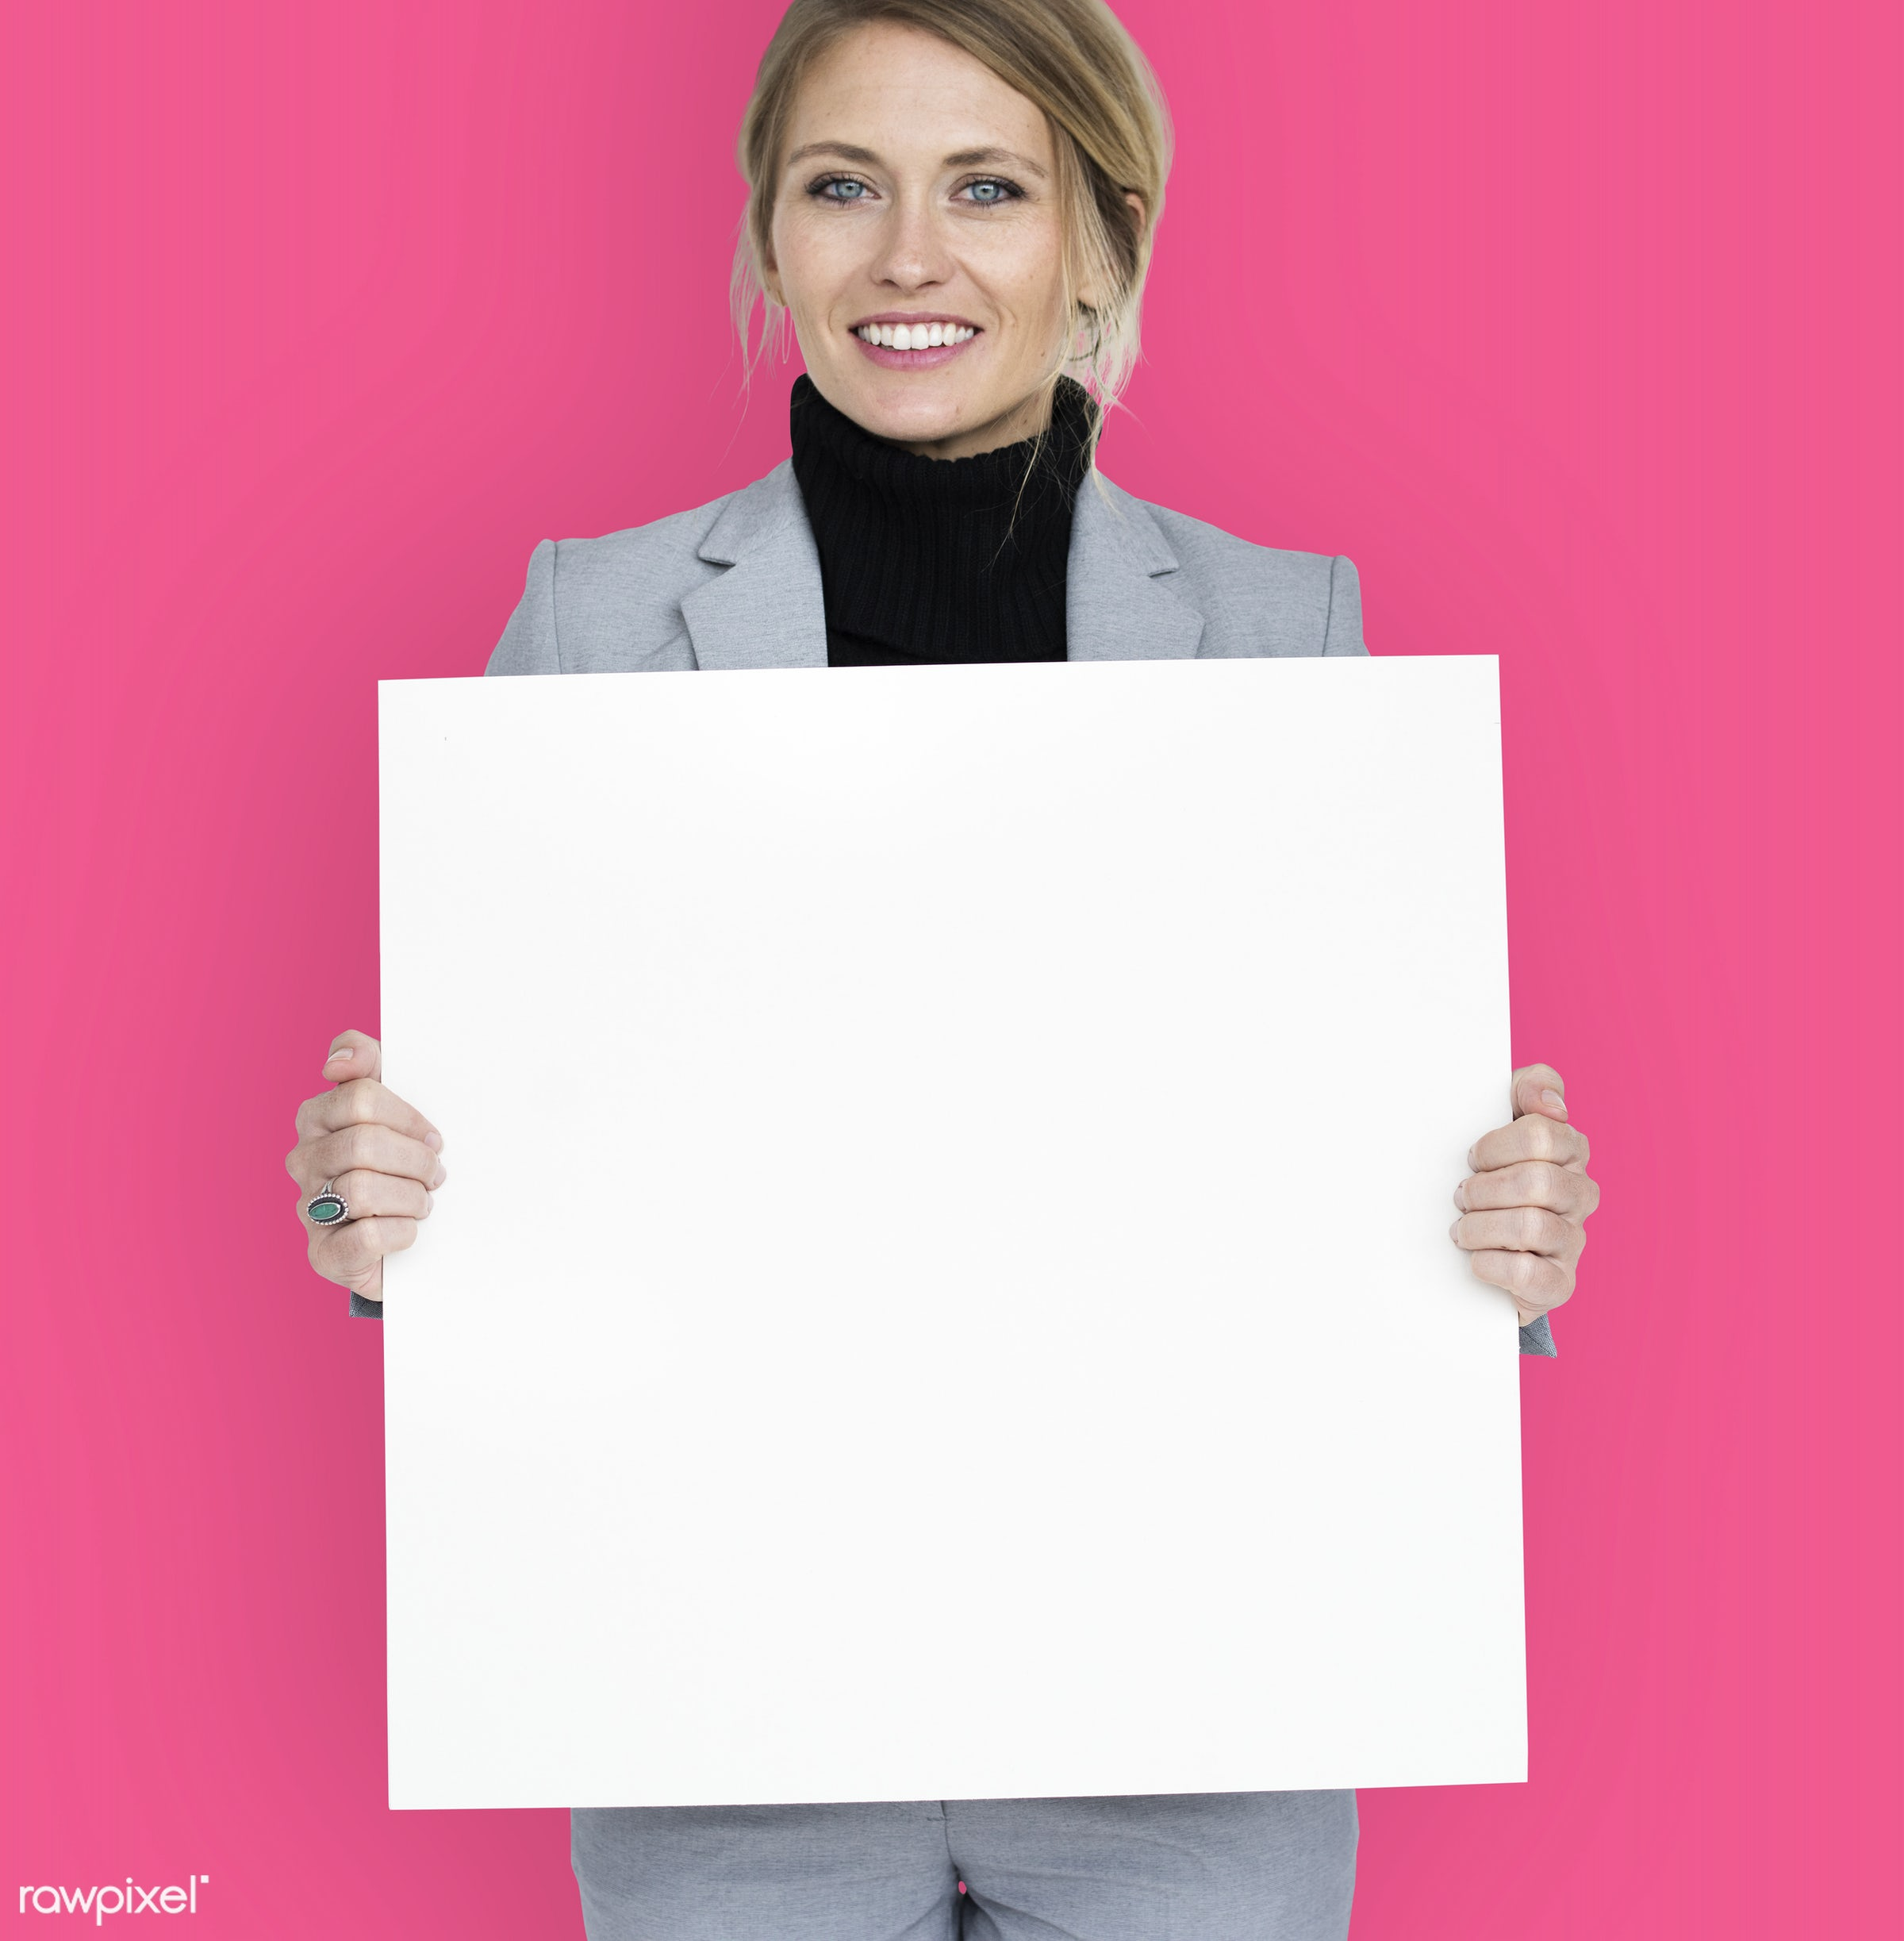 studio, expression, person, holding, people, placard, woman, pink, smile, cheerful, smiling, isolated, happiness,...